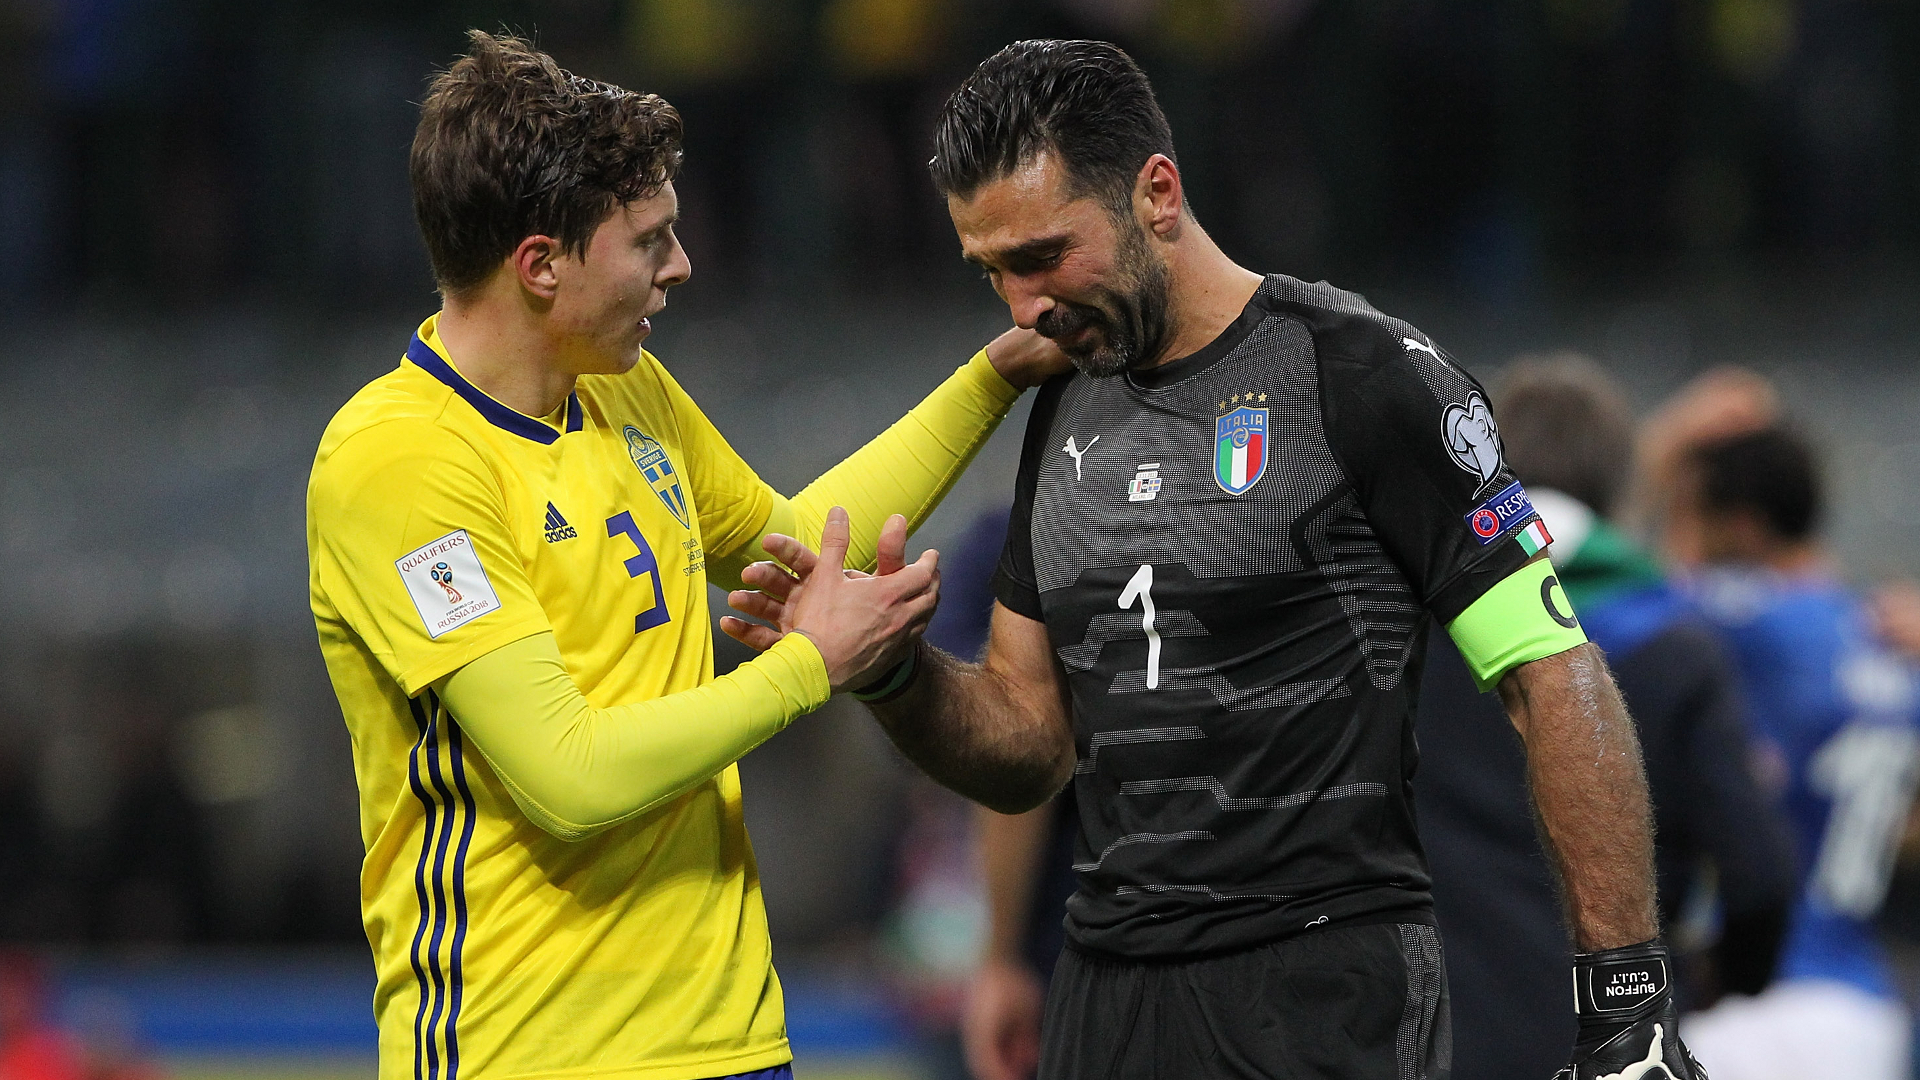 With retirement expected, Buffon to hold news conference